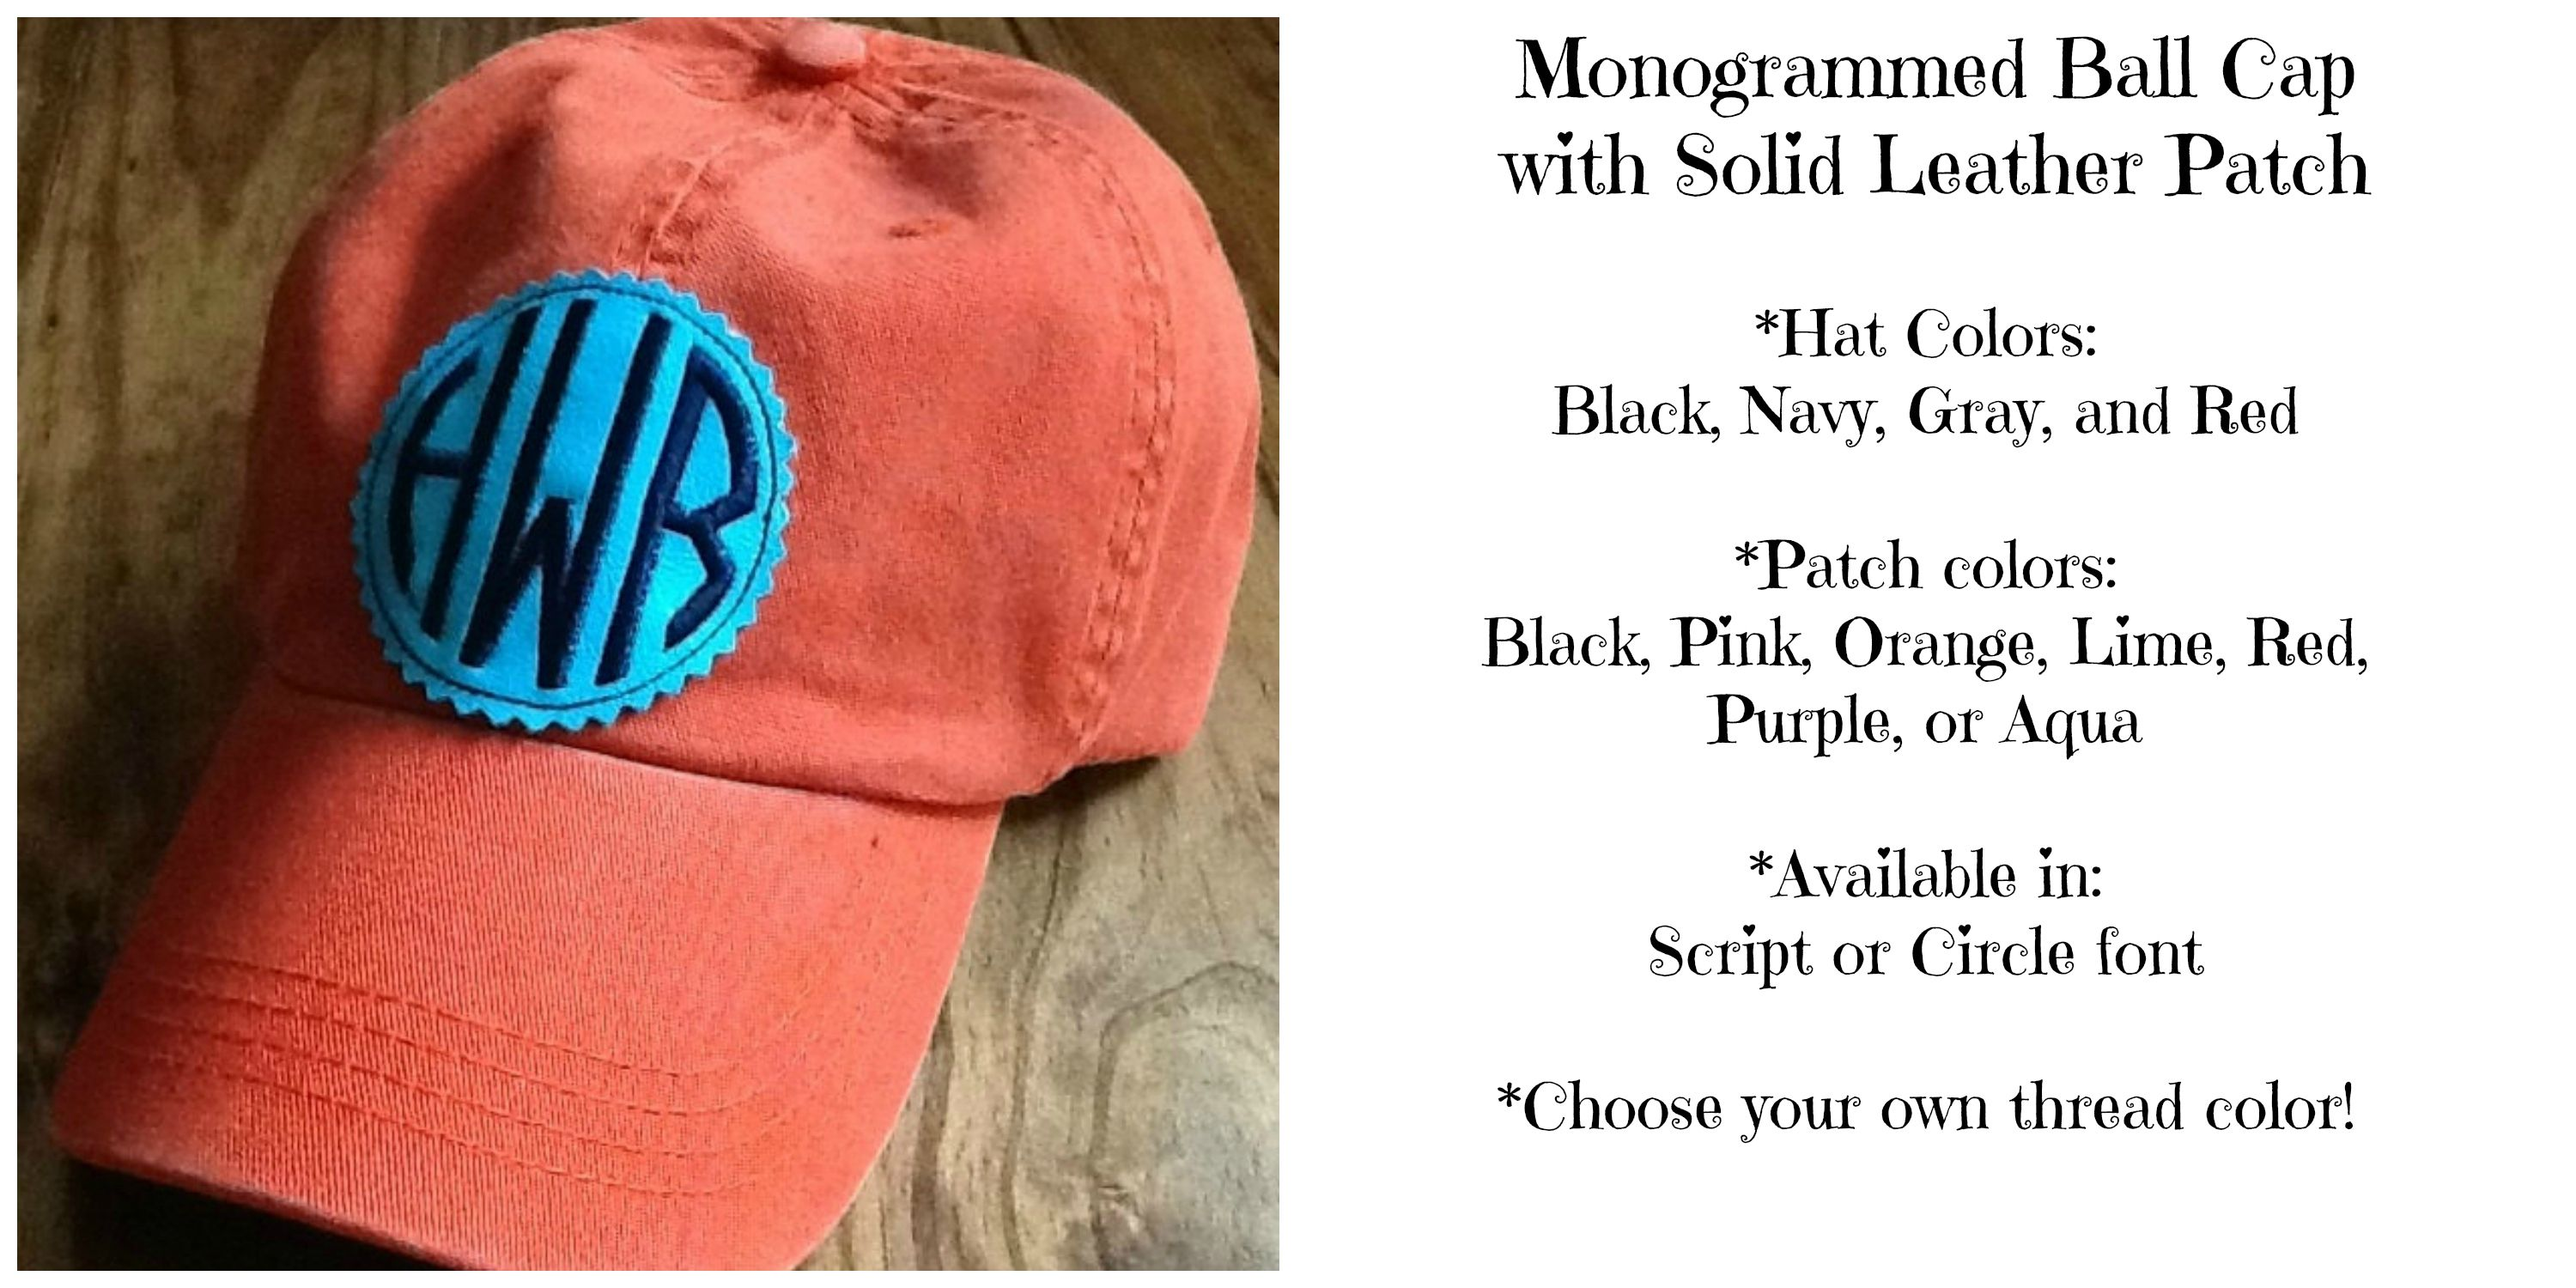 Love these solid patch monogrammed ball caps!